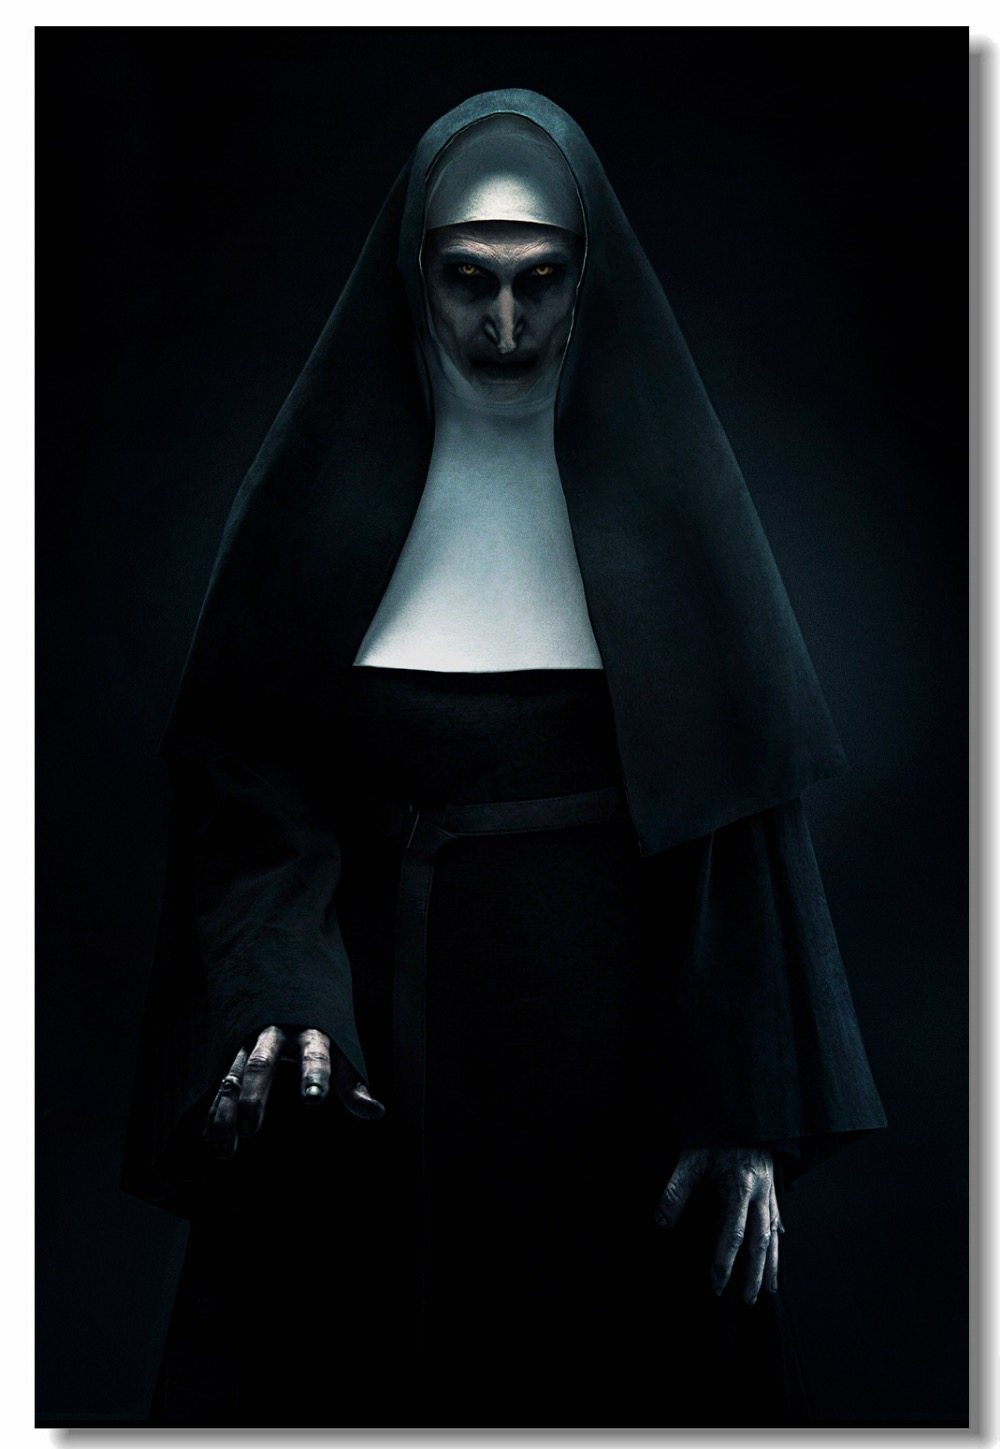 Us 559 30 Offcustom Canvas Wall Mural Horrible Movie Poster Bonnie Aarons Wall Sticker Conjouring Universe The Nun Wallpaper Decoration 0082 In